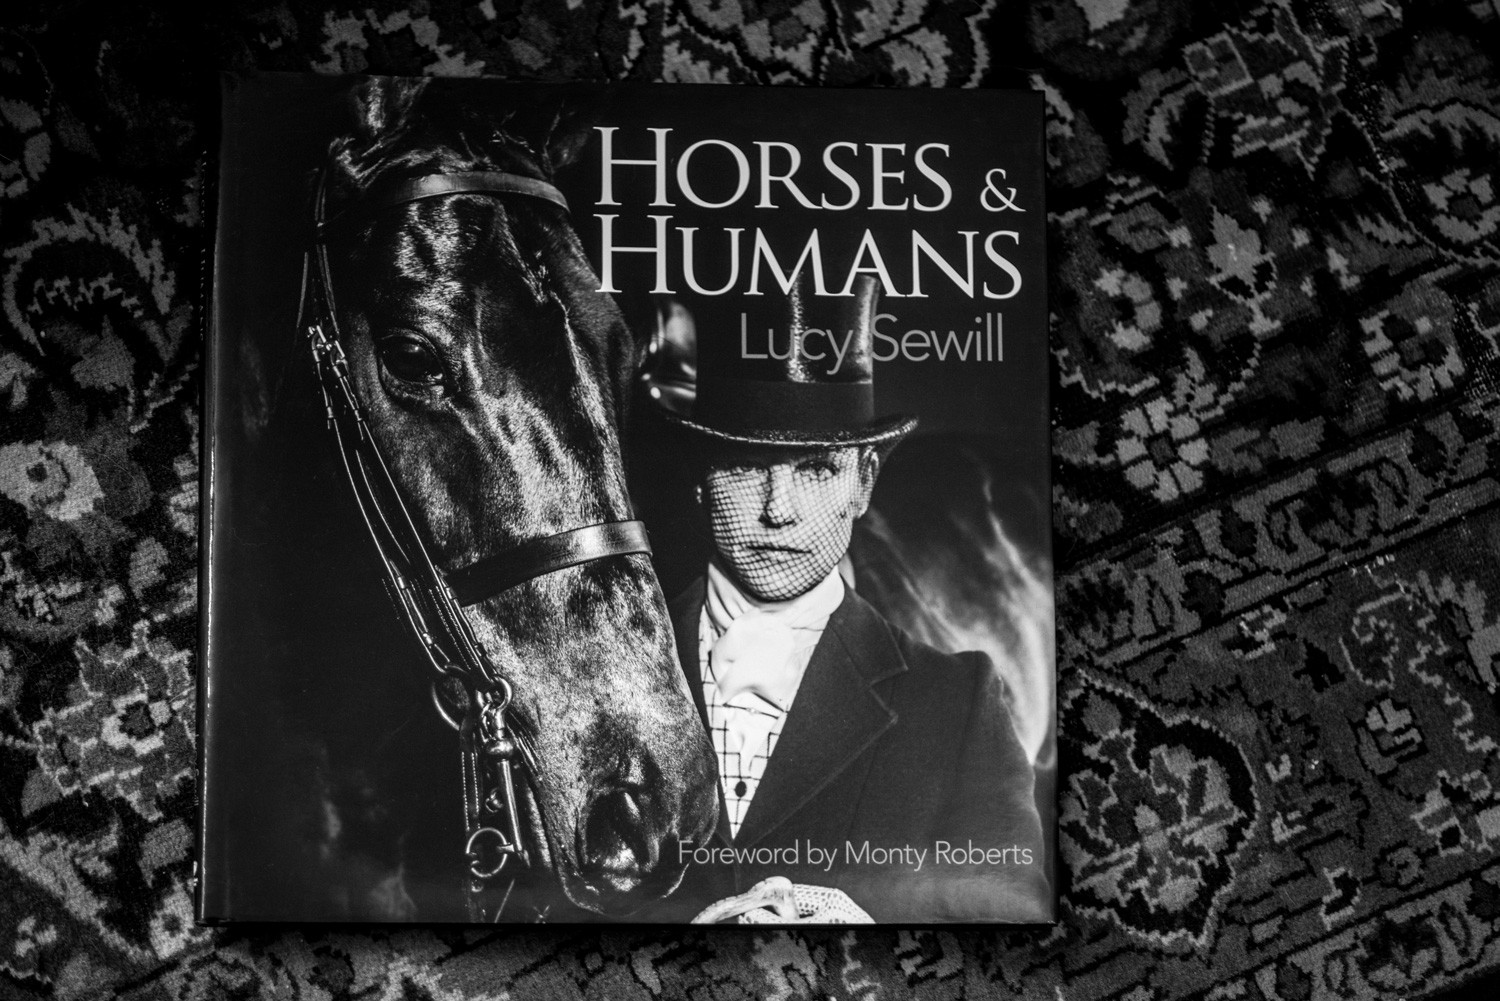 HORSES & HUMANS BY LUCY SEWILL